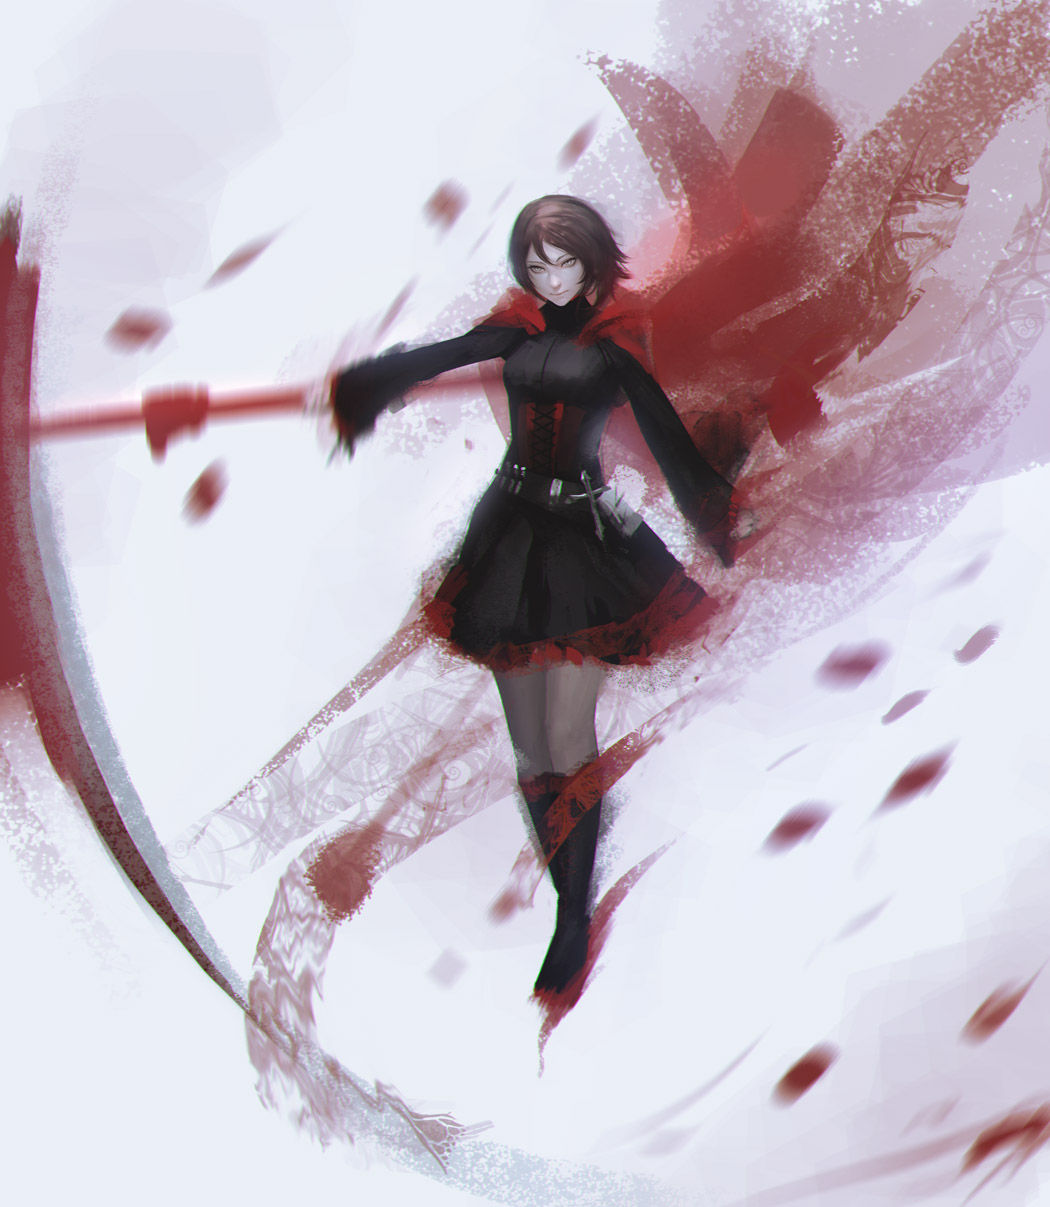 Rwby red like roses by ae rie on deviantart - Rwby ruby rose fanart ...